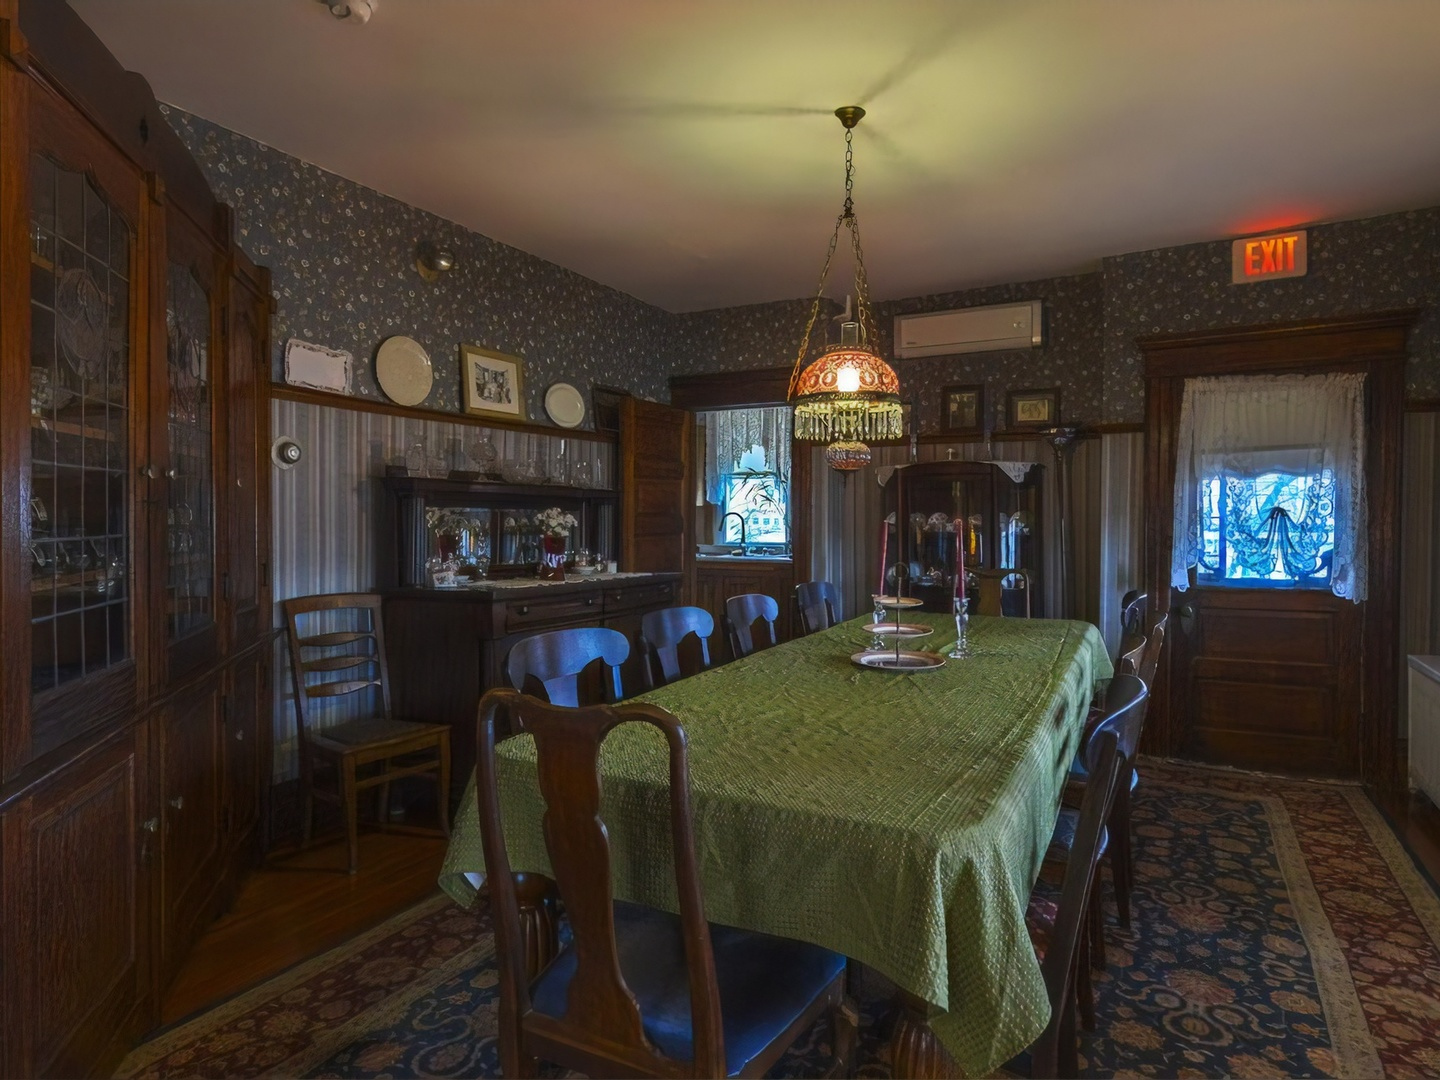 A view of a living room at Candlelight Inn Bed & Breakfast.